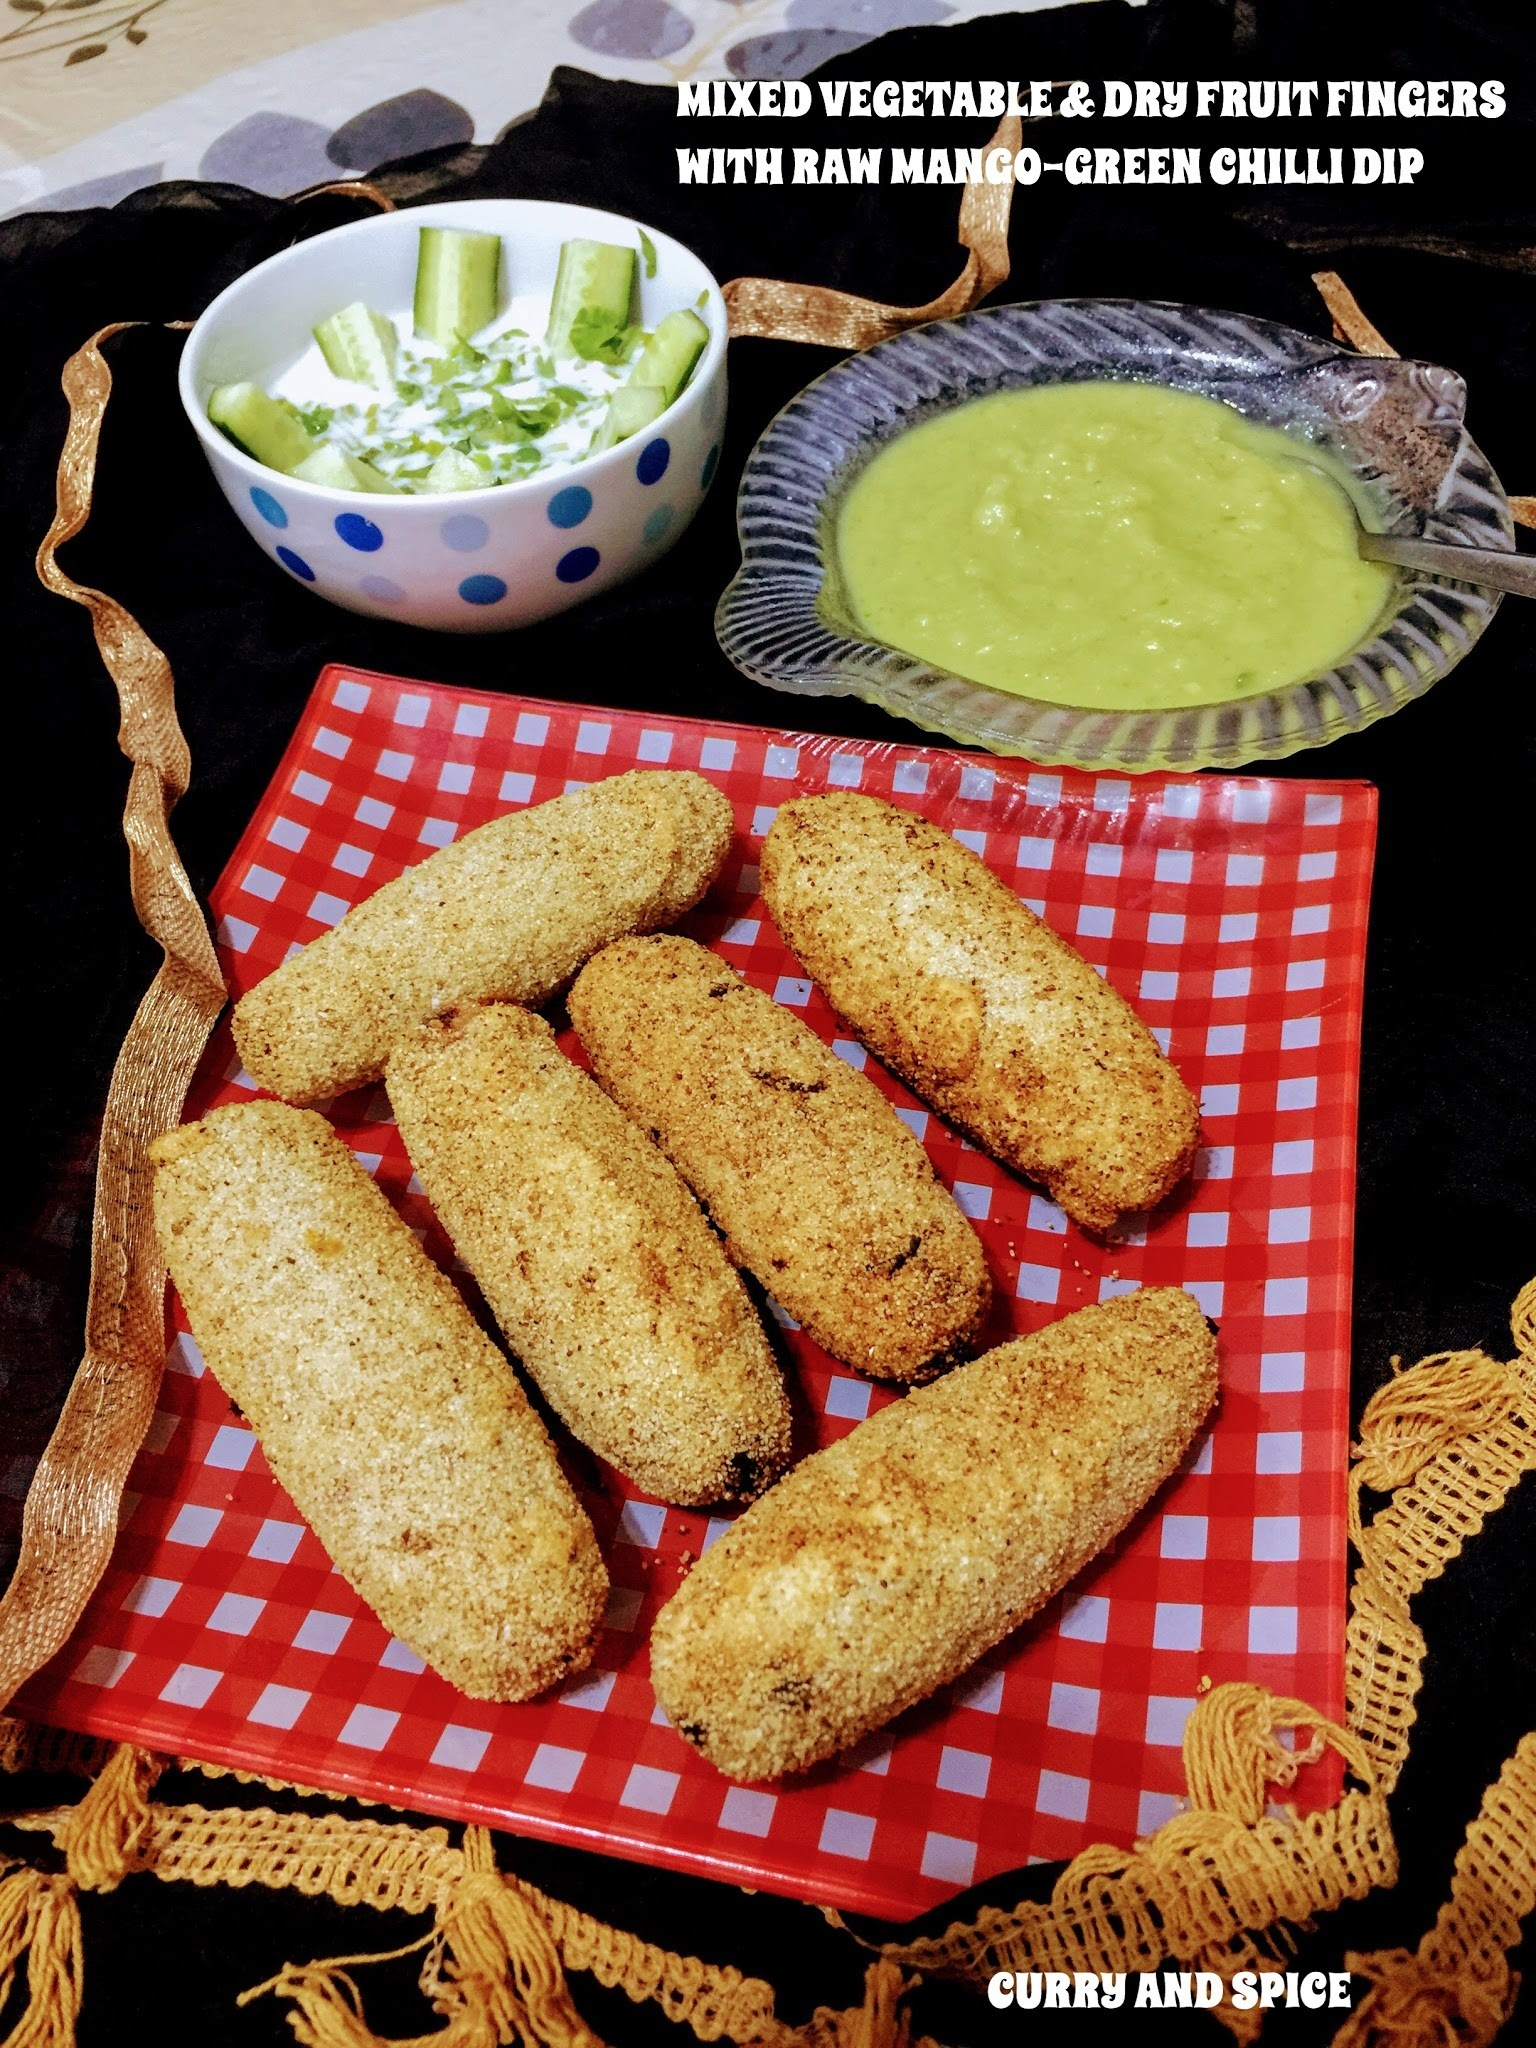 MIXED VEGETABLE & DRY FRUIT FINGERS WITH RAW MANGO- GREEN CHILLI DIP